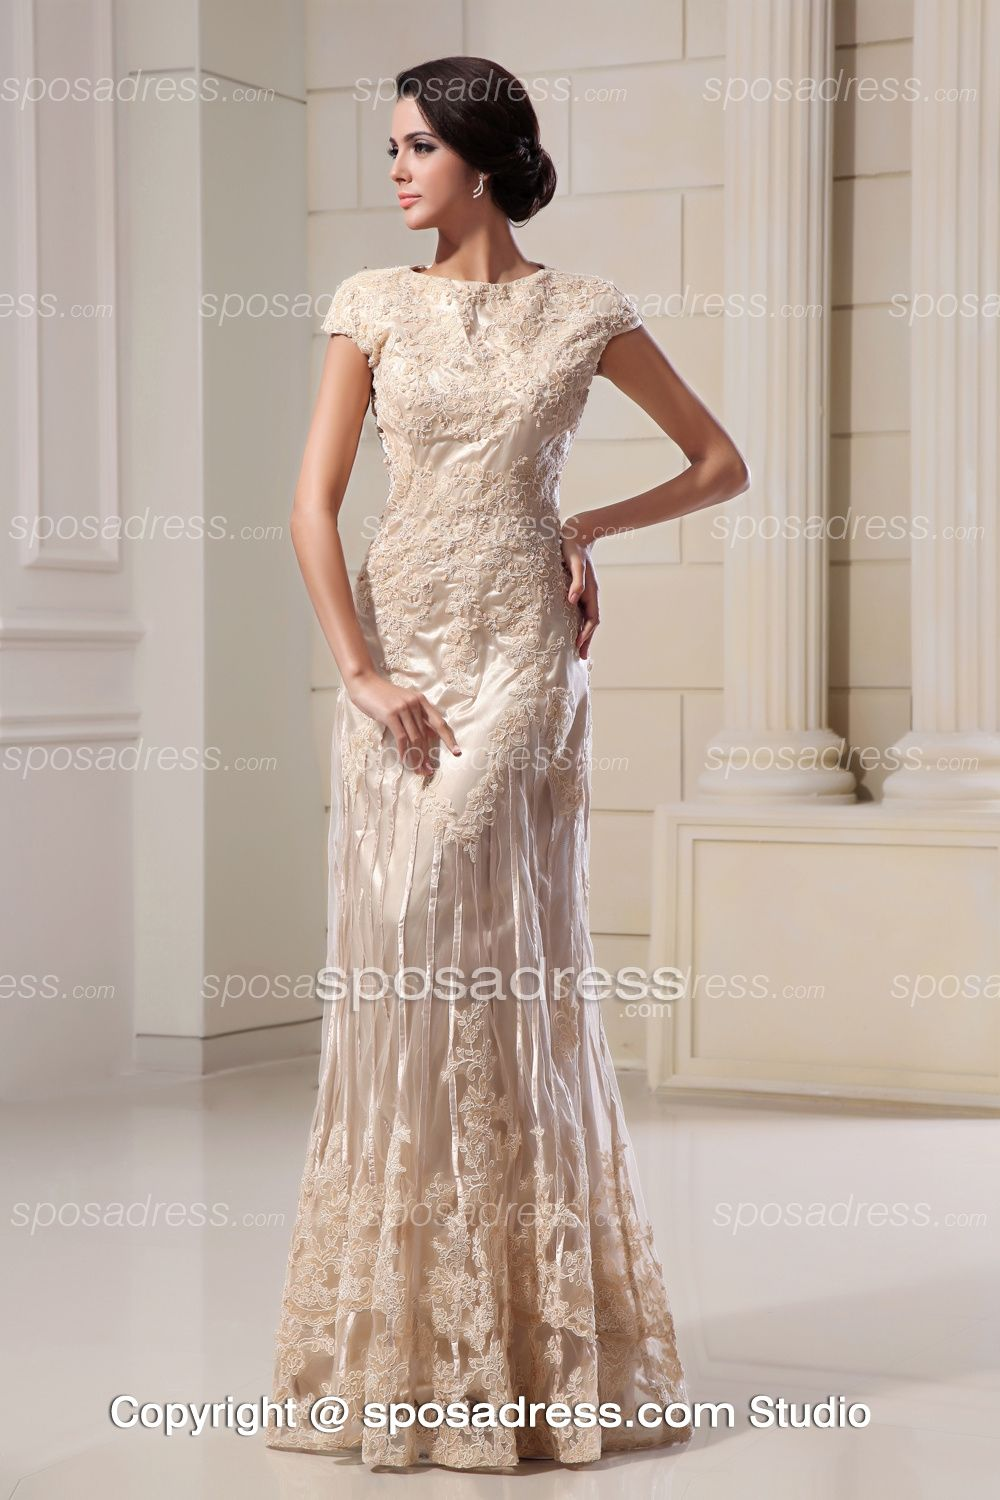 Lace mermaid wedding dresses 2013